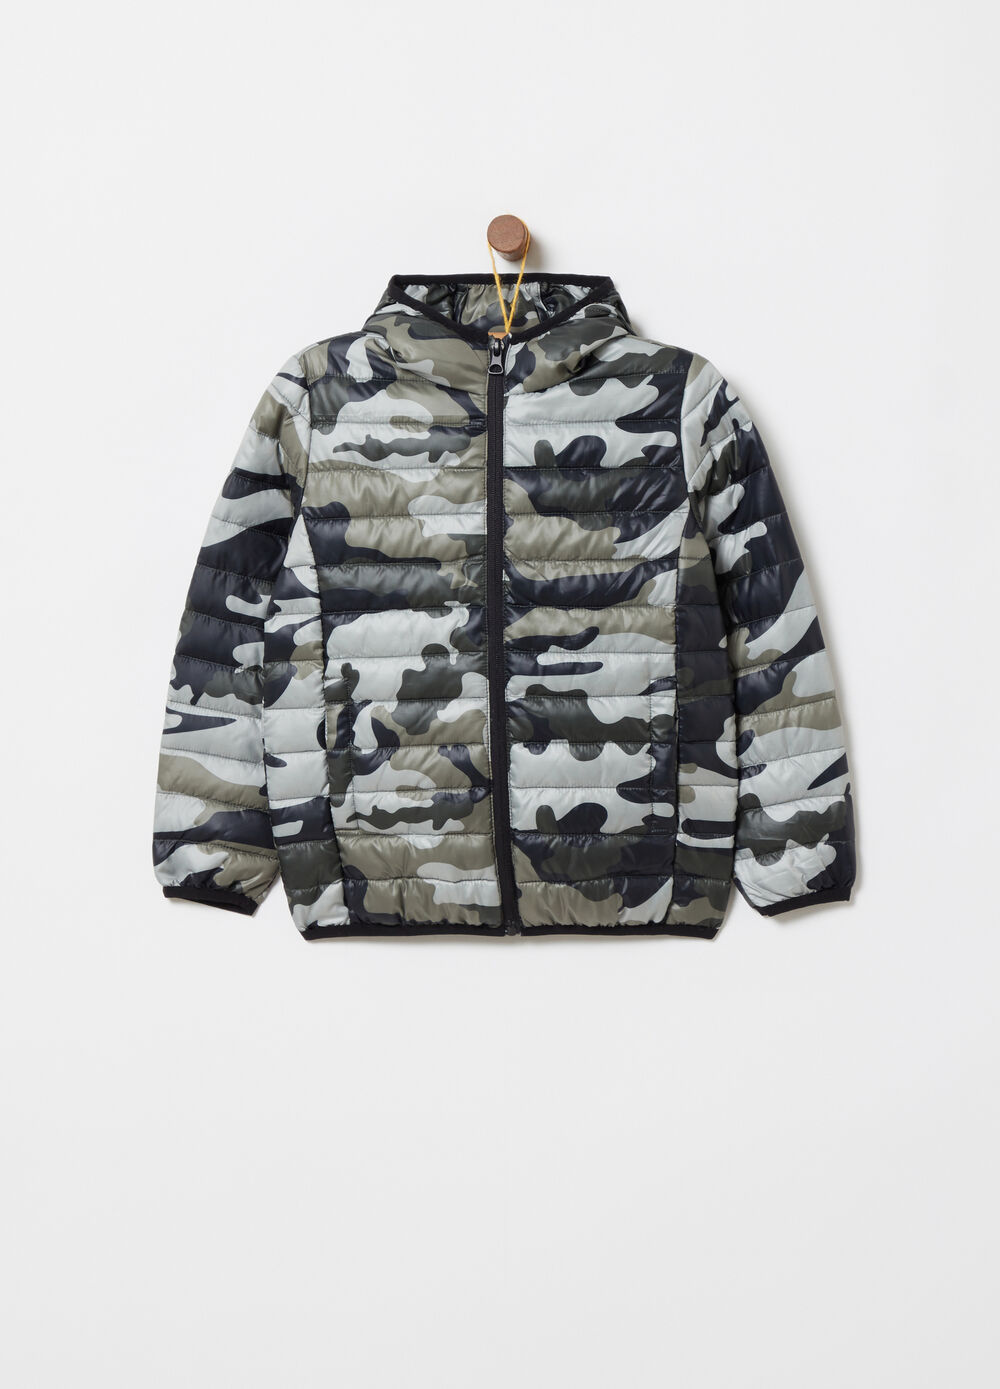 Ultralight jacket with all-over camouflage